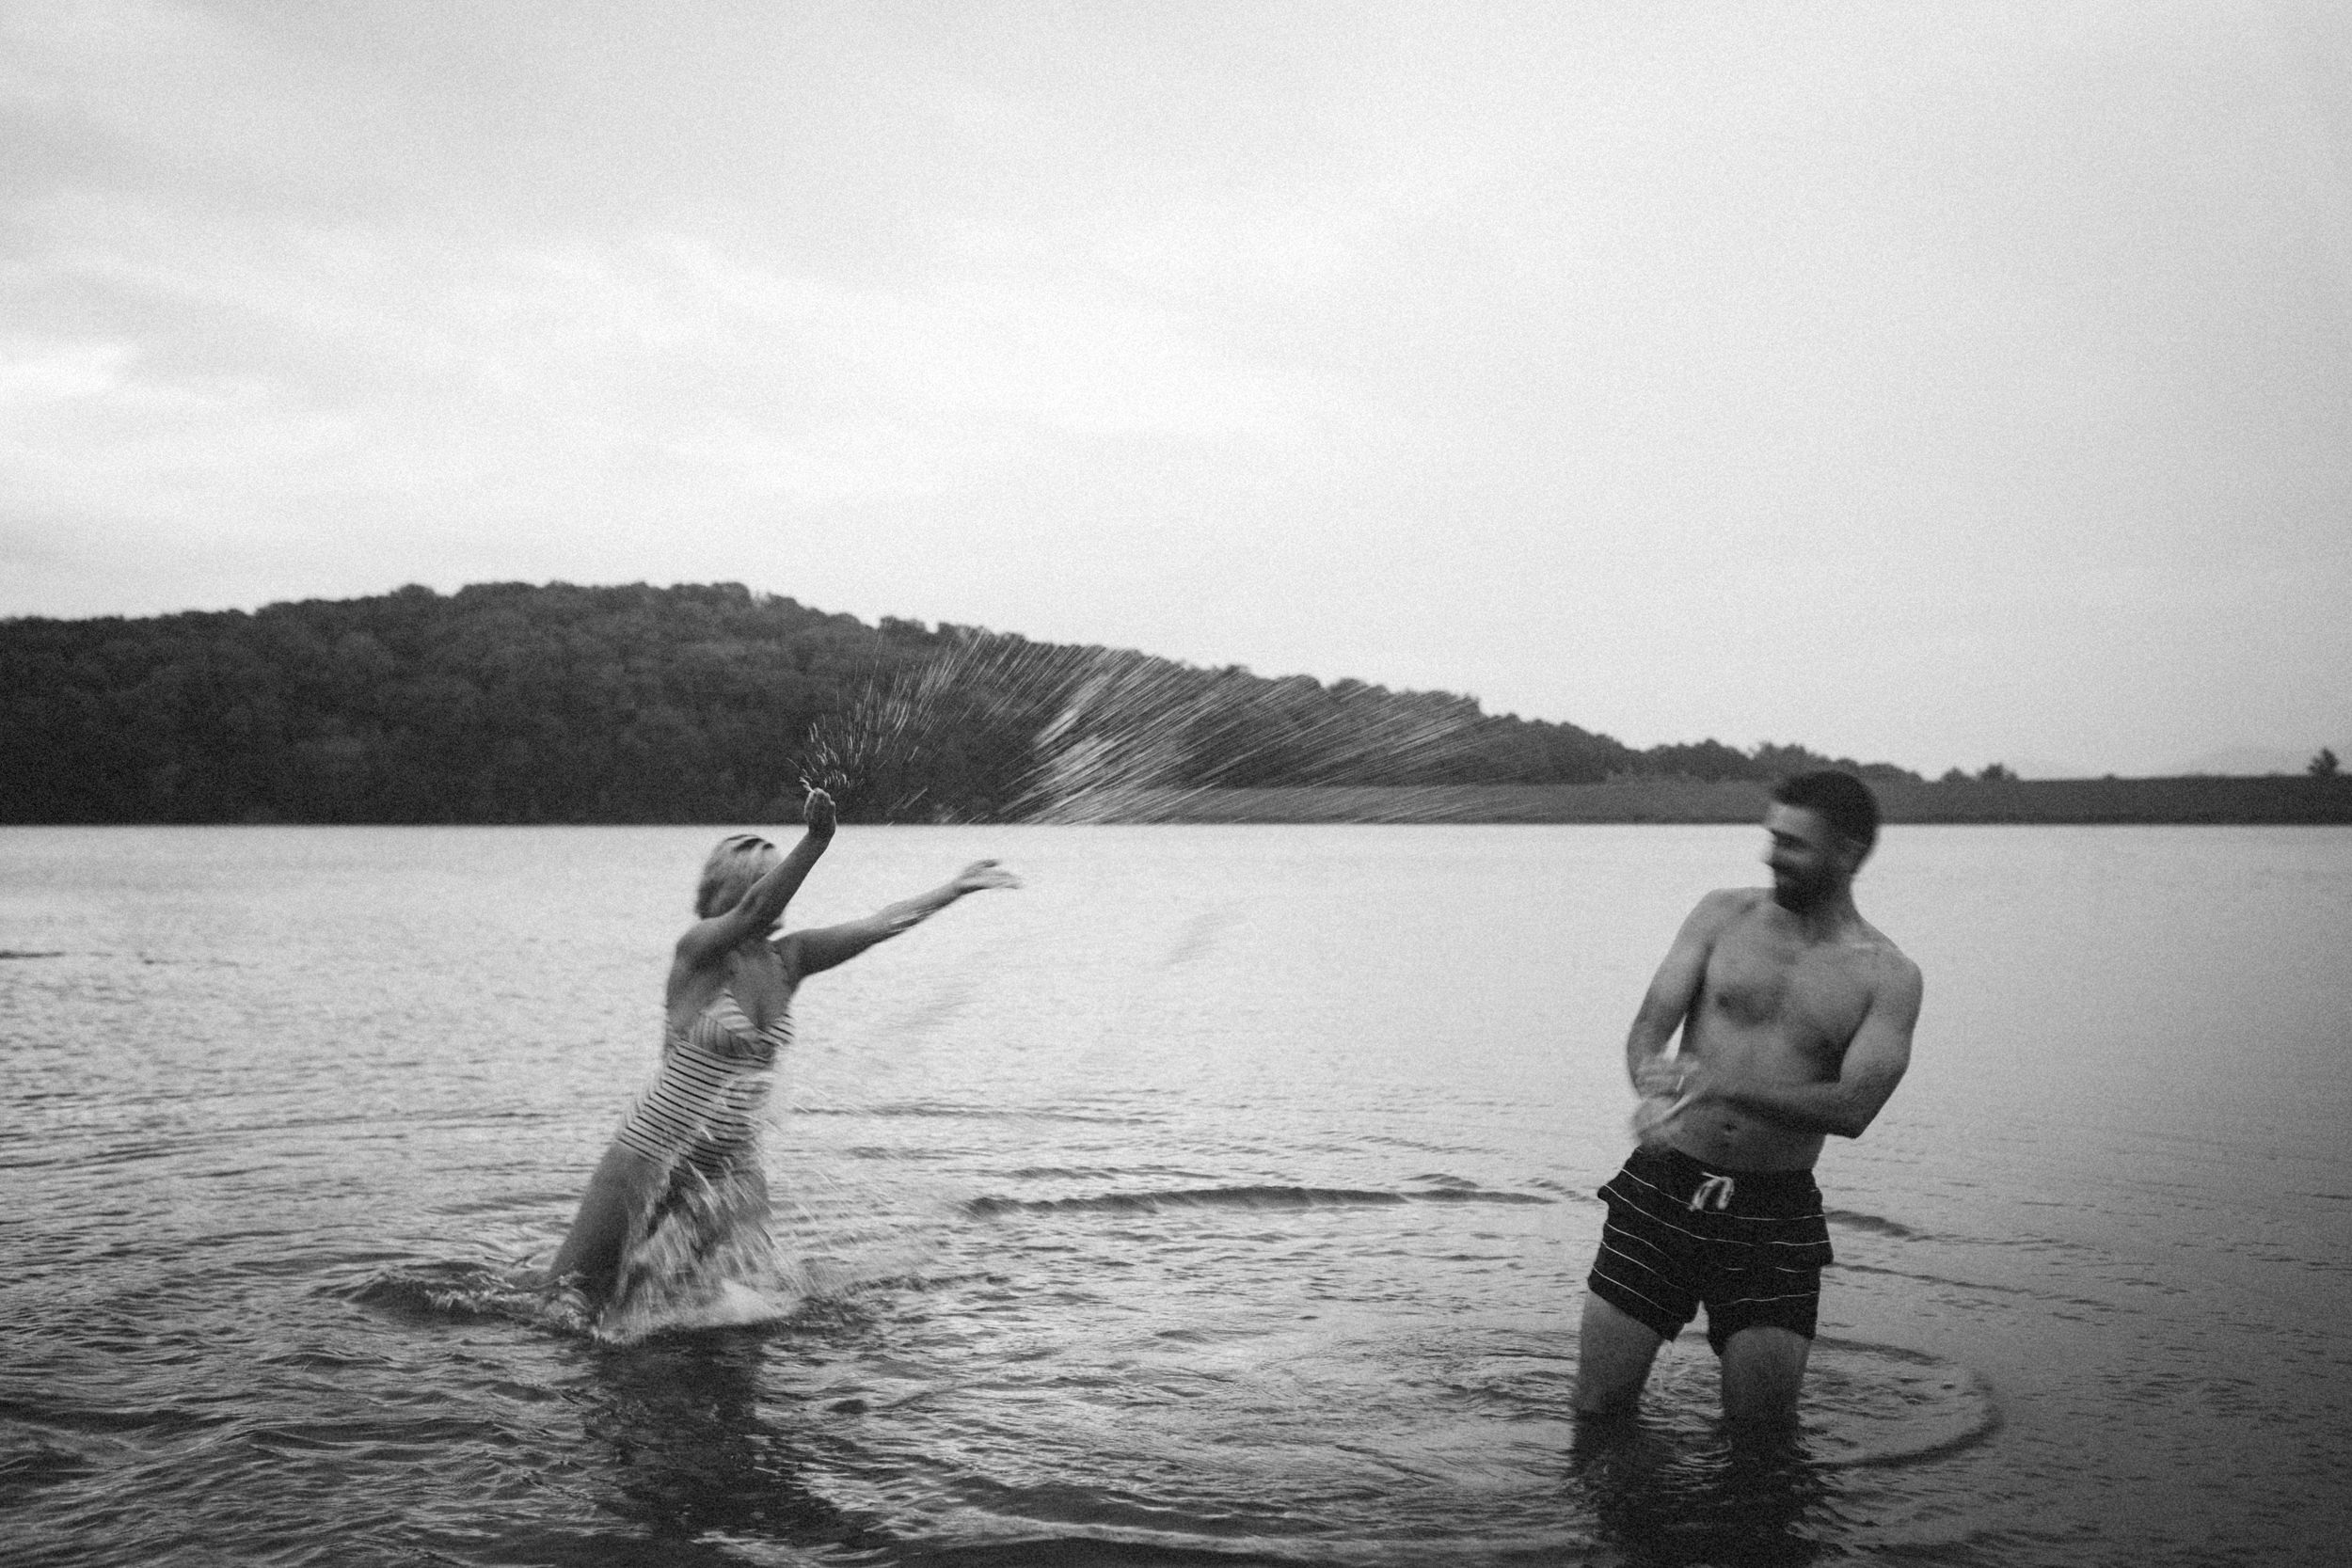 Sarah-Katherine-Davis-Photography-Louisville-Kentucky-Wedding-Elopement-Photographer-Just-Because-Session-Stormy-Blue-Hour-Swimming-In-Lake-Couple-Session-Abby-Schyler-114bw.jpg